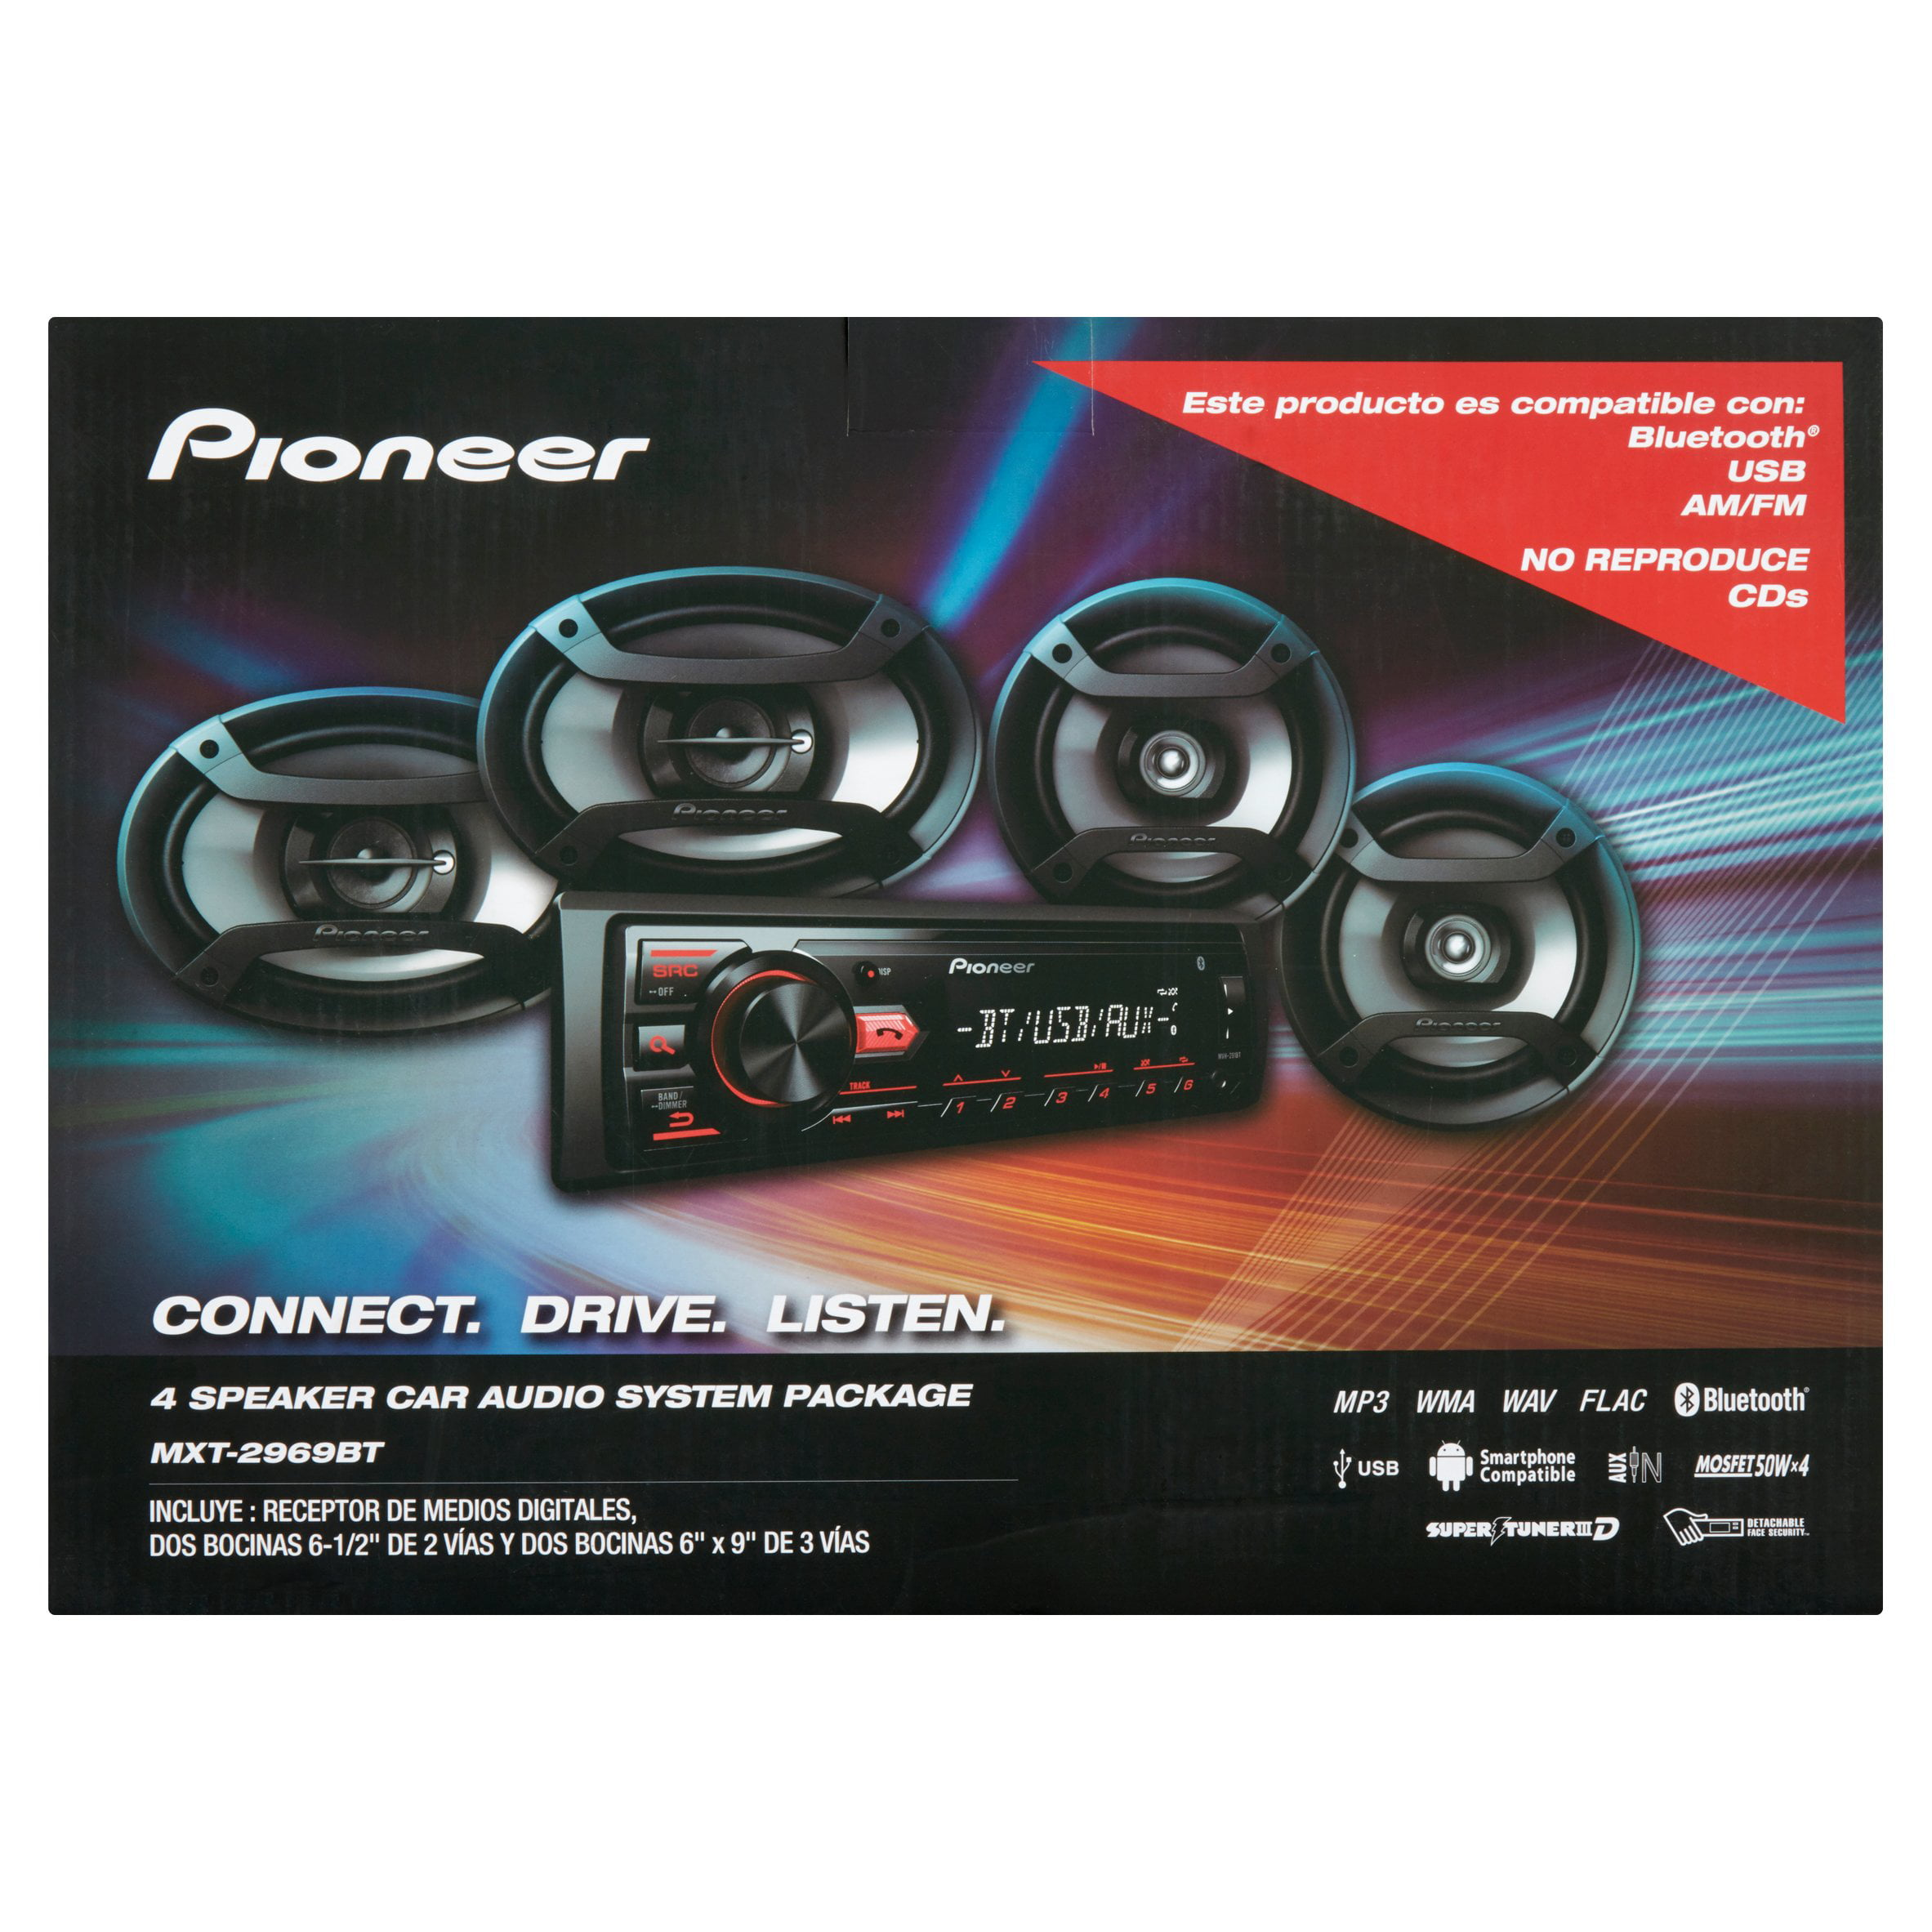 Of the line double din touch screen car stereos from pioneer and sony - Of The Line Double Din Touch Screen Car Stereos From Pioneer And Sony 41